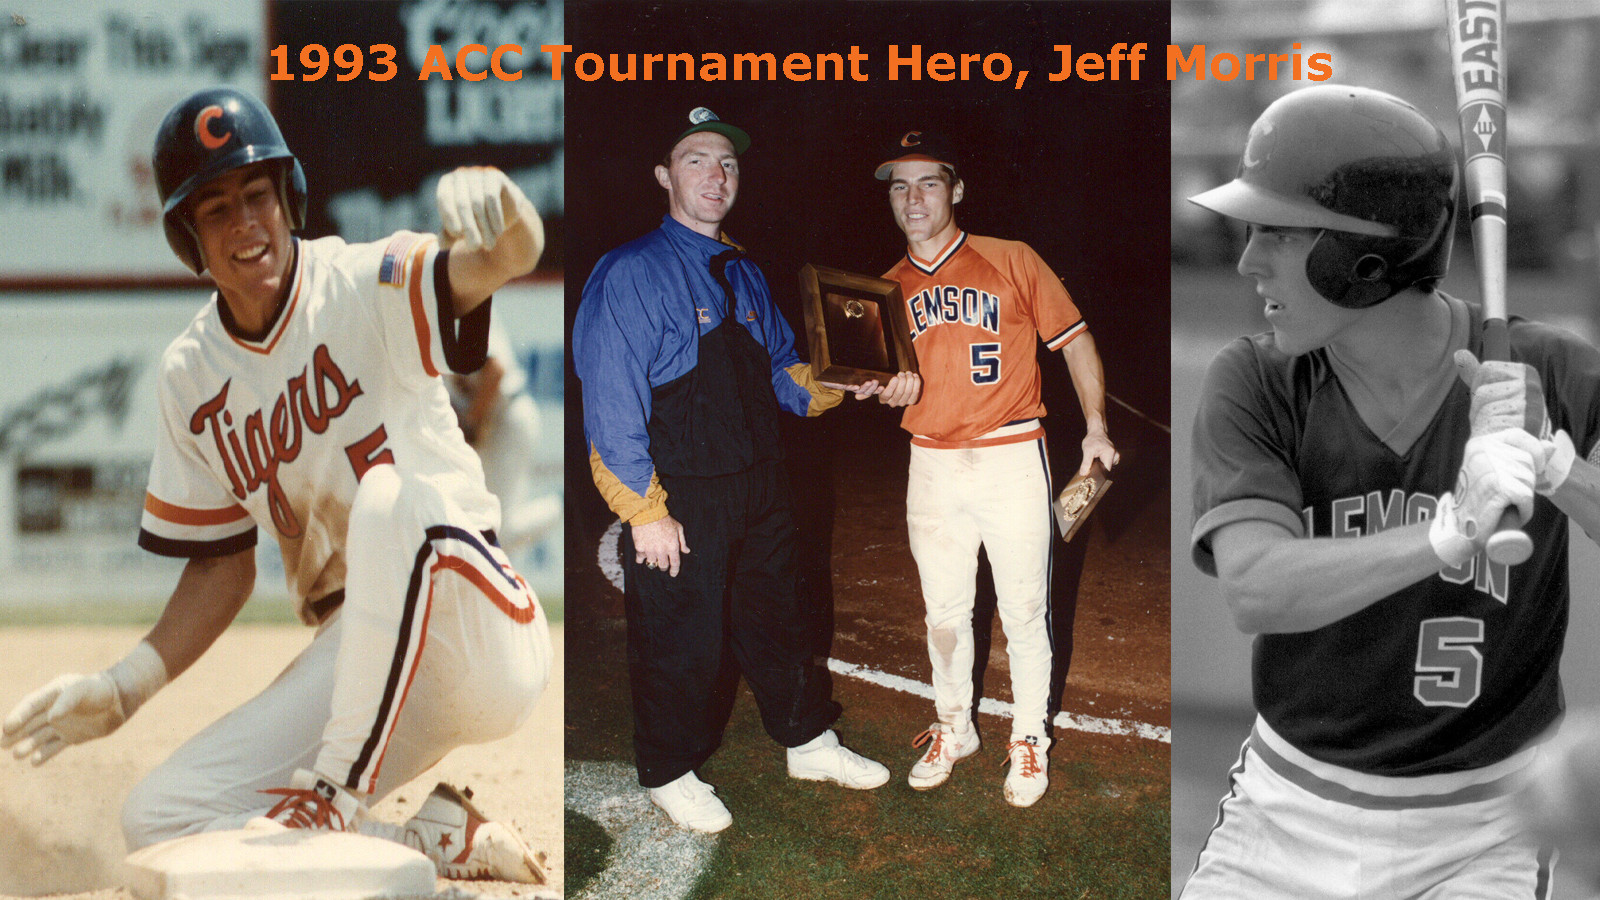 CLEMSON VAULT: Jeff Morris and the 1993 ACC Baseball Tournament